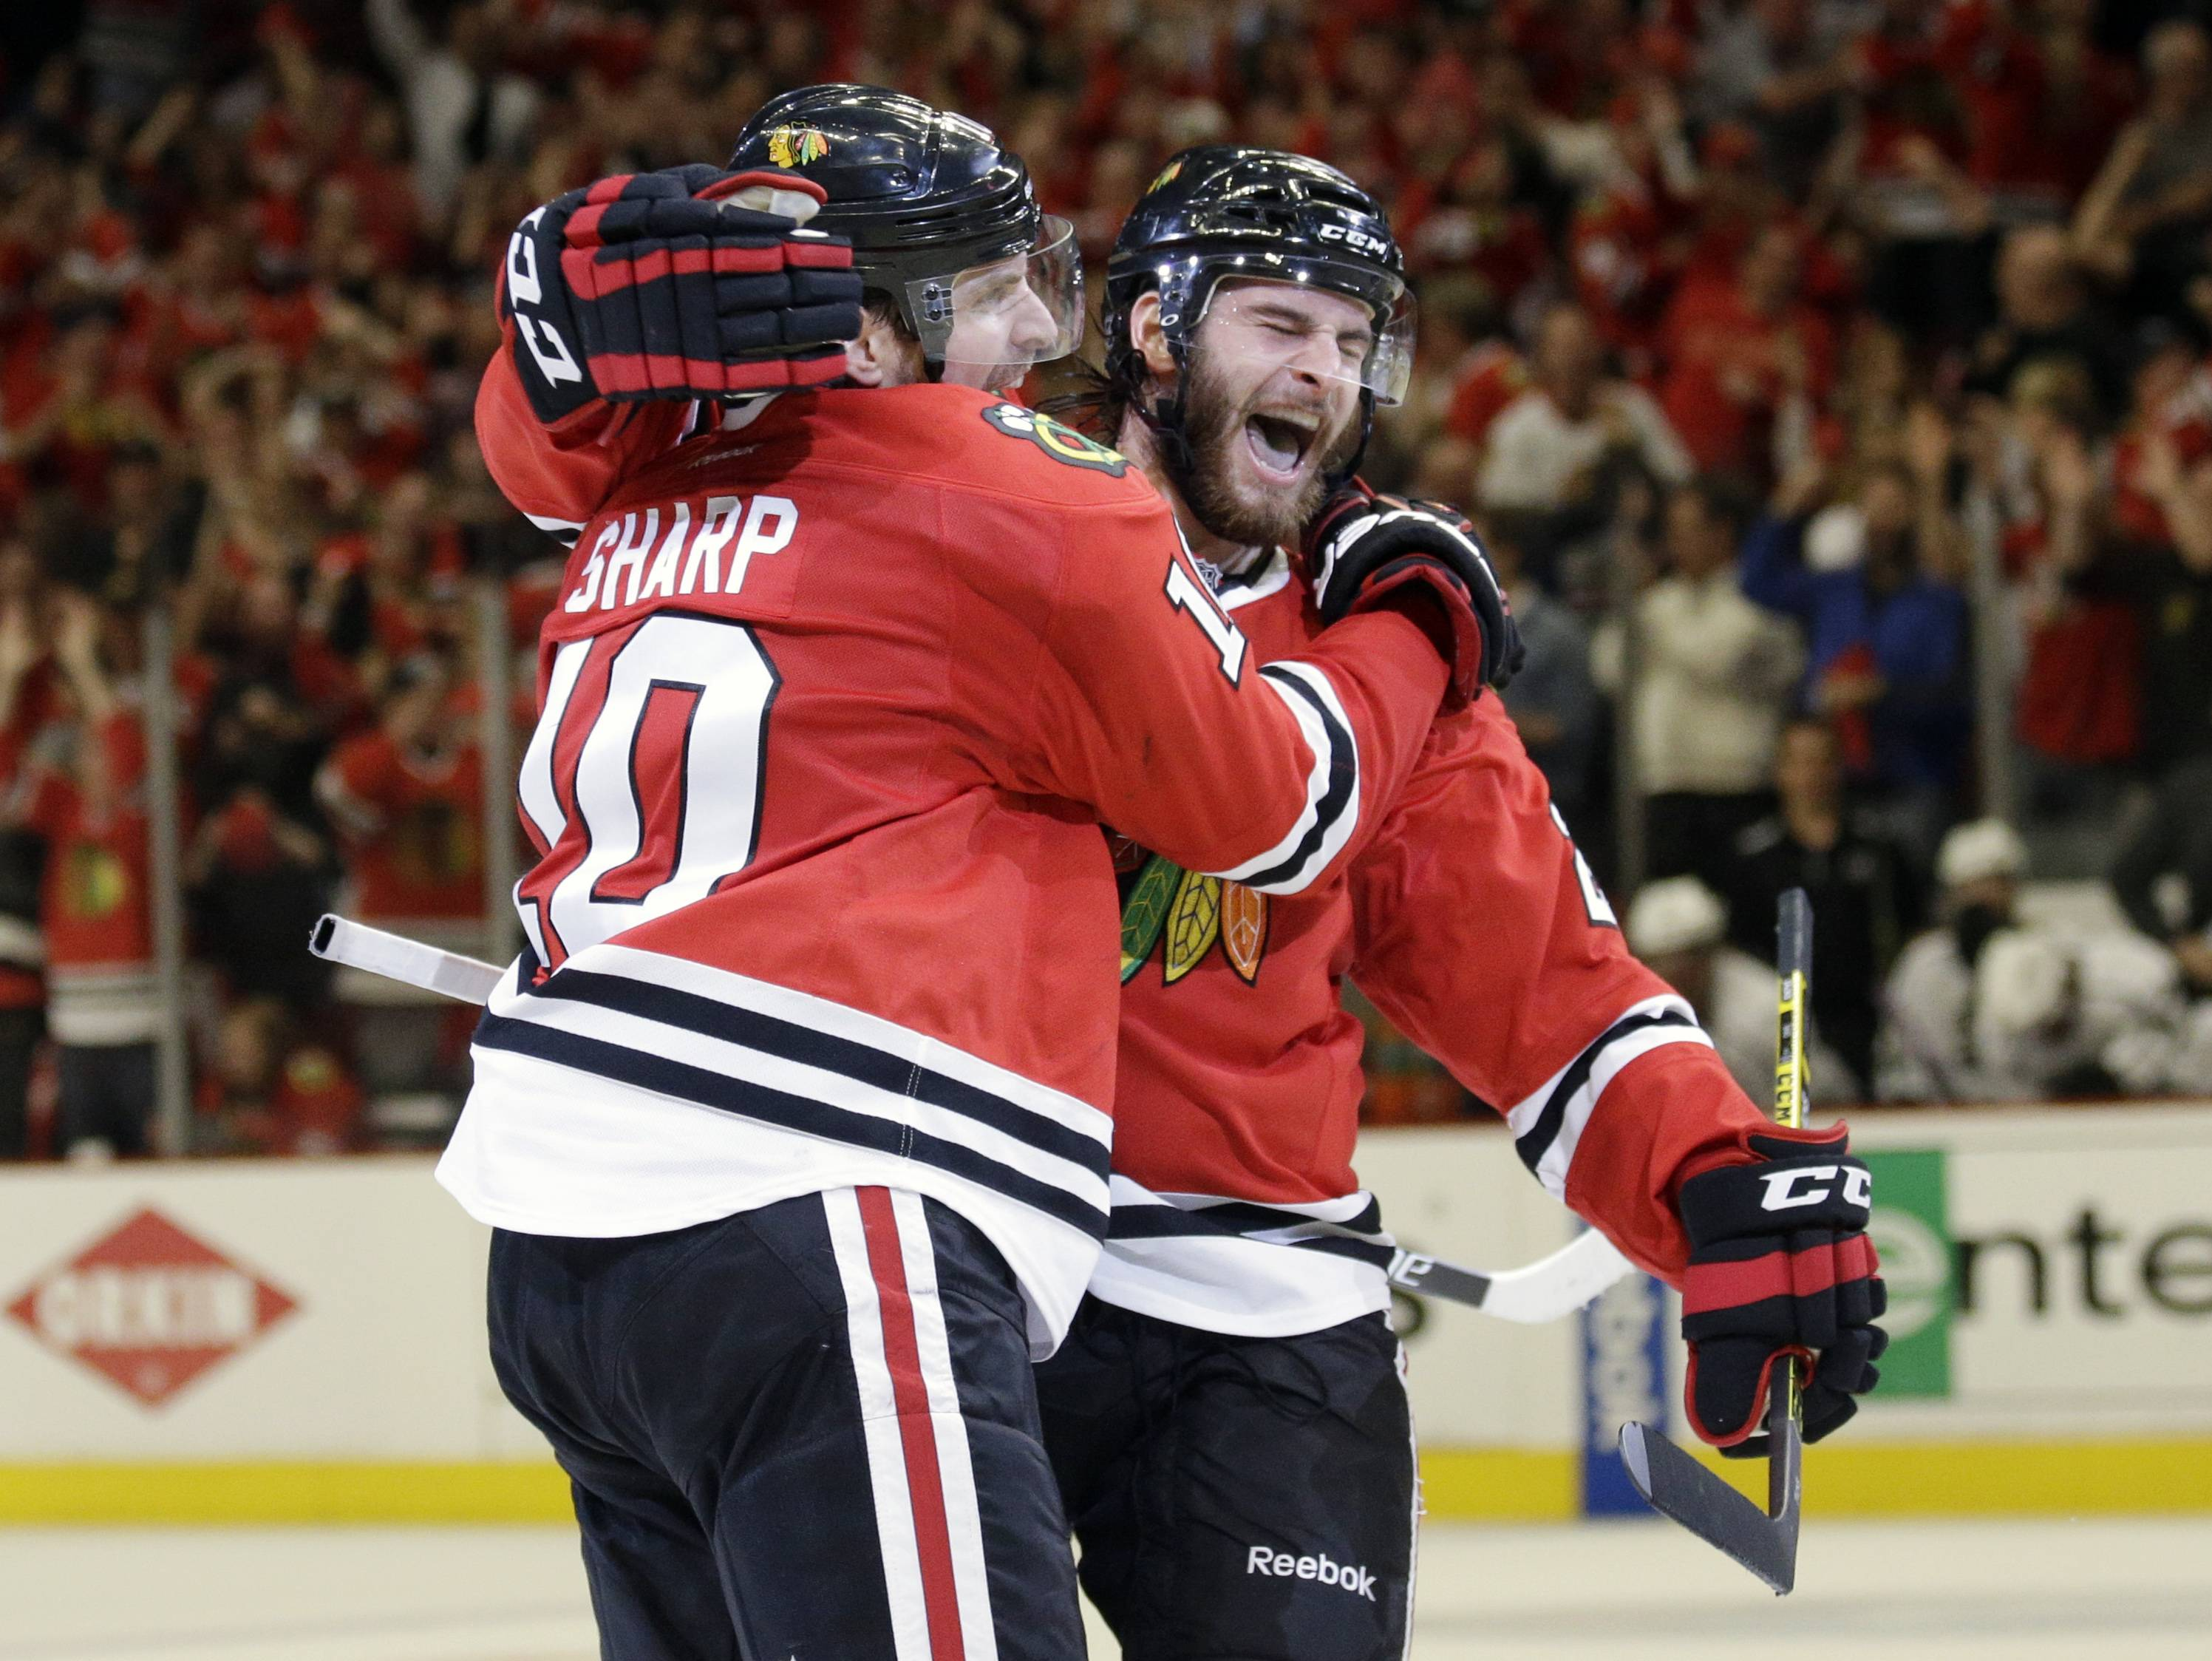 Chicago Blackhawks left wing Patrick Sharp (10) celebrates his goal with Chicago Blackhawks left wing Brandon Saad during the second period in Game 7 of the Western Conference finals in the NHL hockey Stanley Cup playoffs against the Los Angeles Kings Sunday, June 1, 2014, in Chicago.